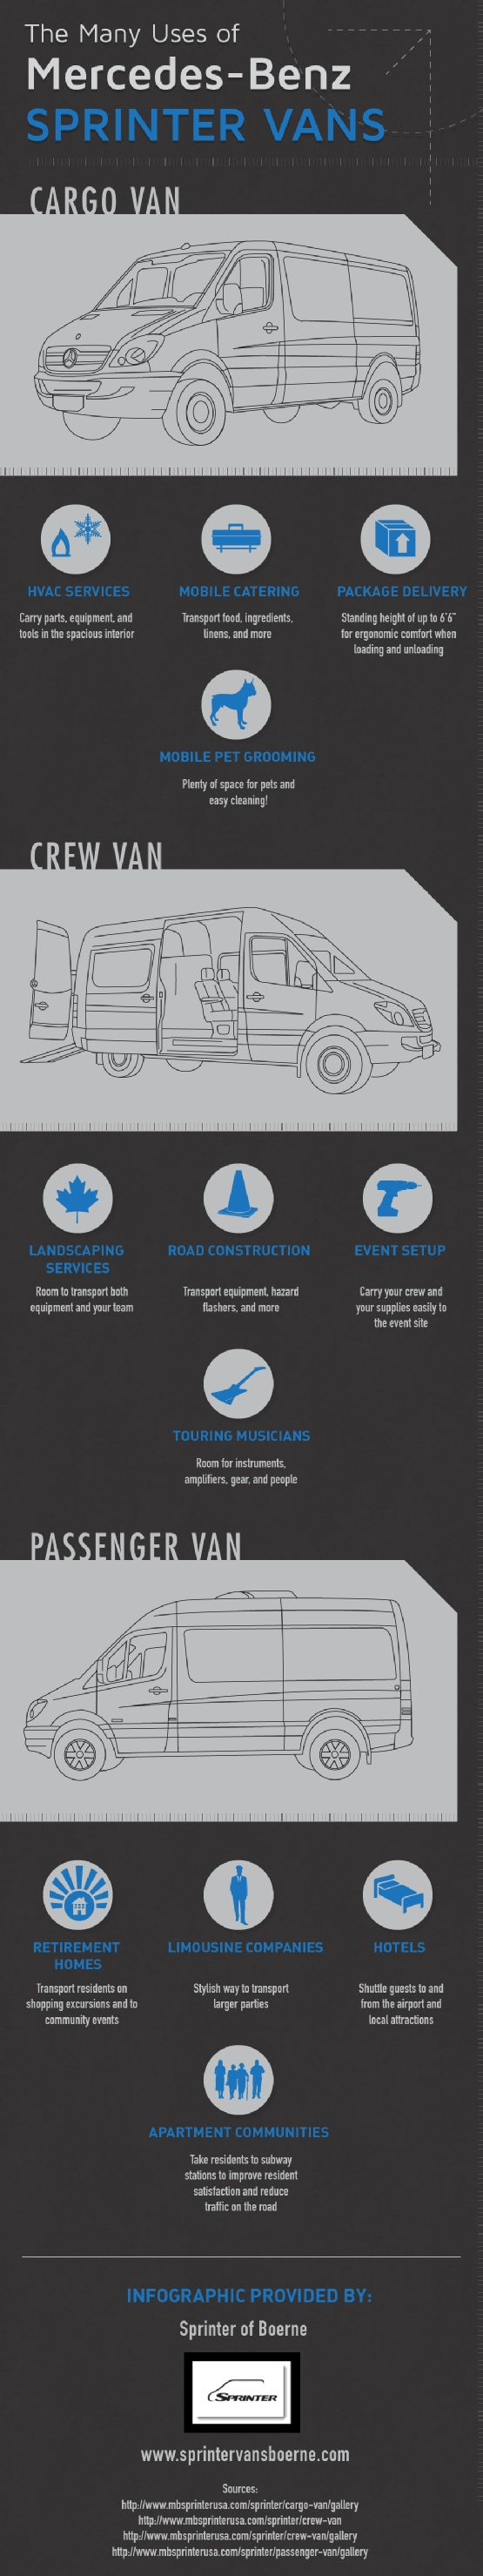 Auto Body Paint Supplies 1000 Images About Car And Automotive Infographics On Pinterest